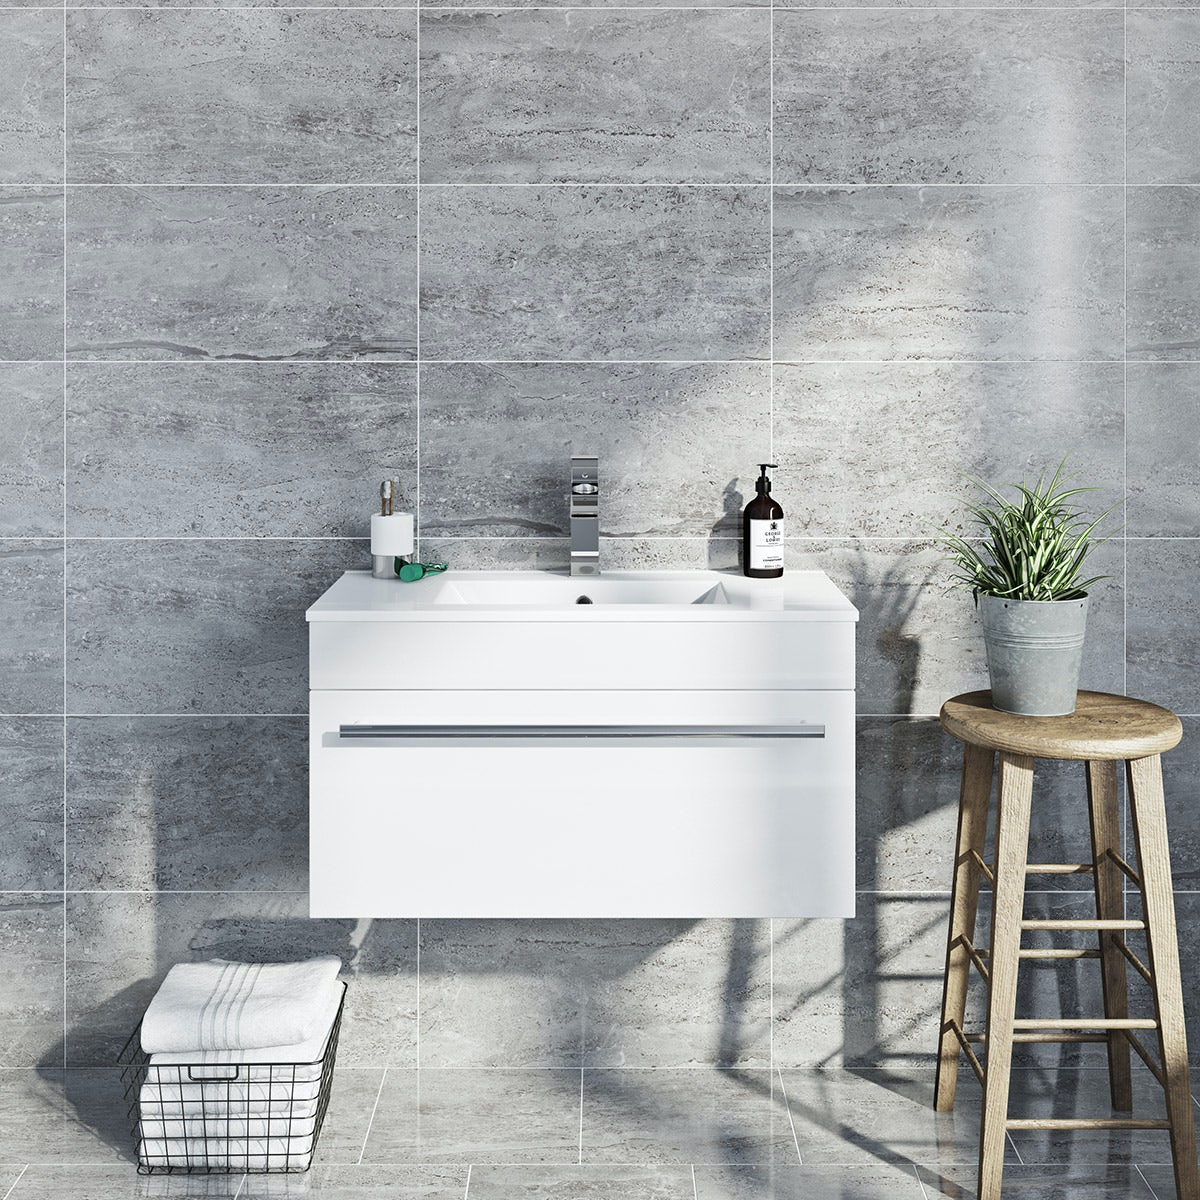 British Ceramic Tile Lux grey gloss tile 298mm x 598mm - Sold by Victoria Plum